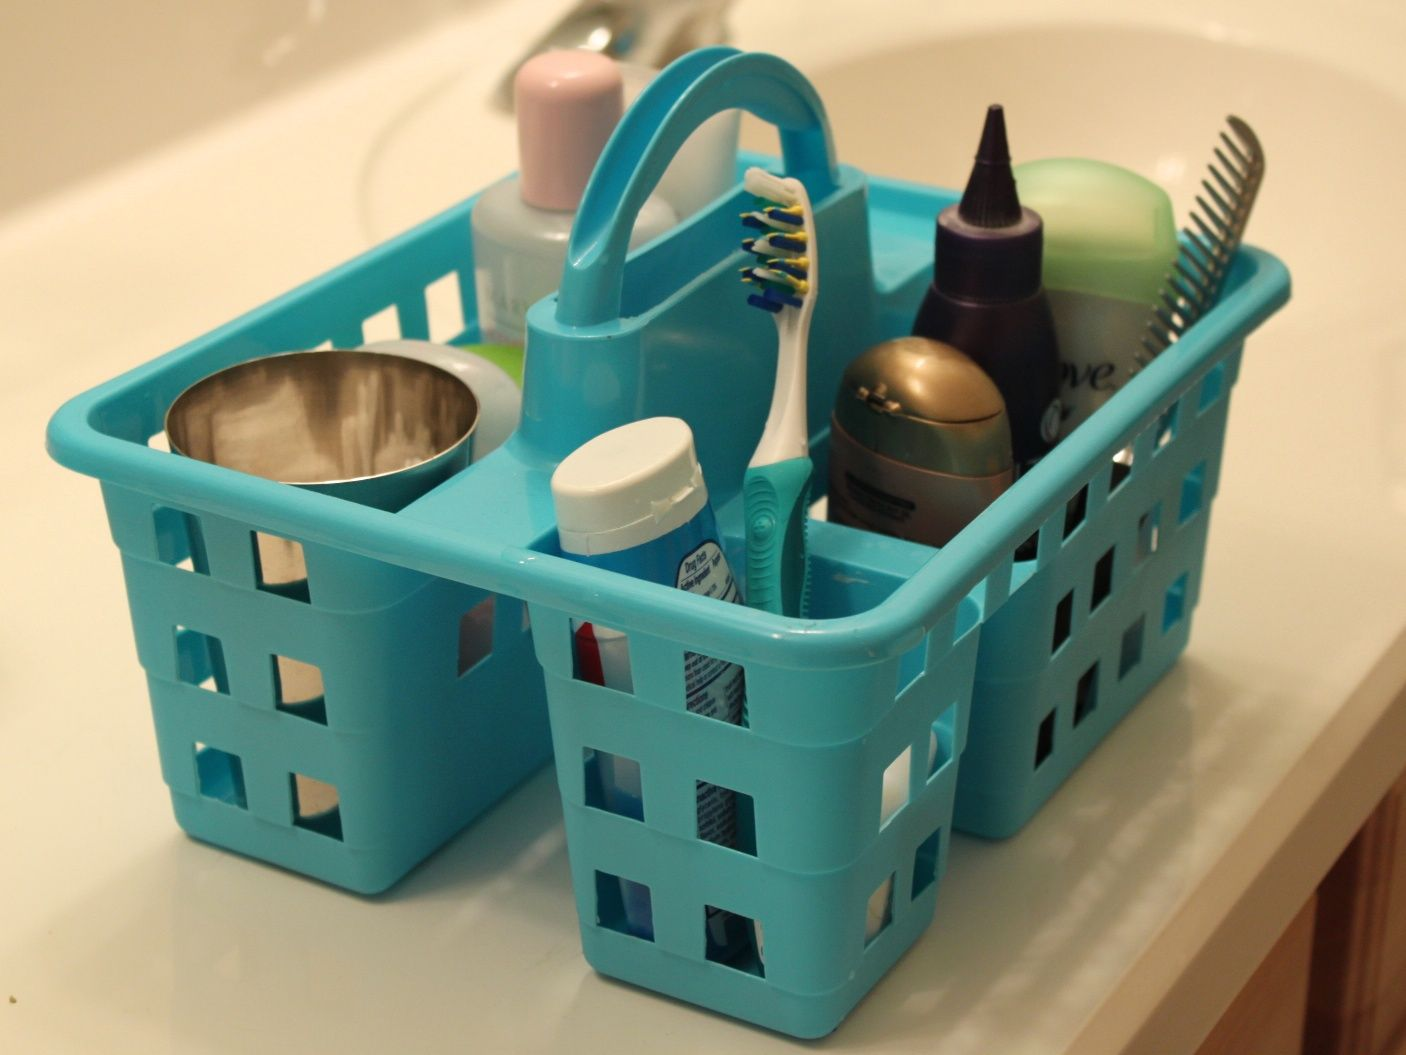 Dollar Store Bathroom Organizing Under Sink Organization Bathroom Storage Organization Dollar Store Organizing Kitchen